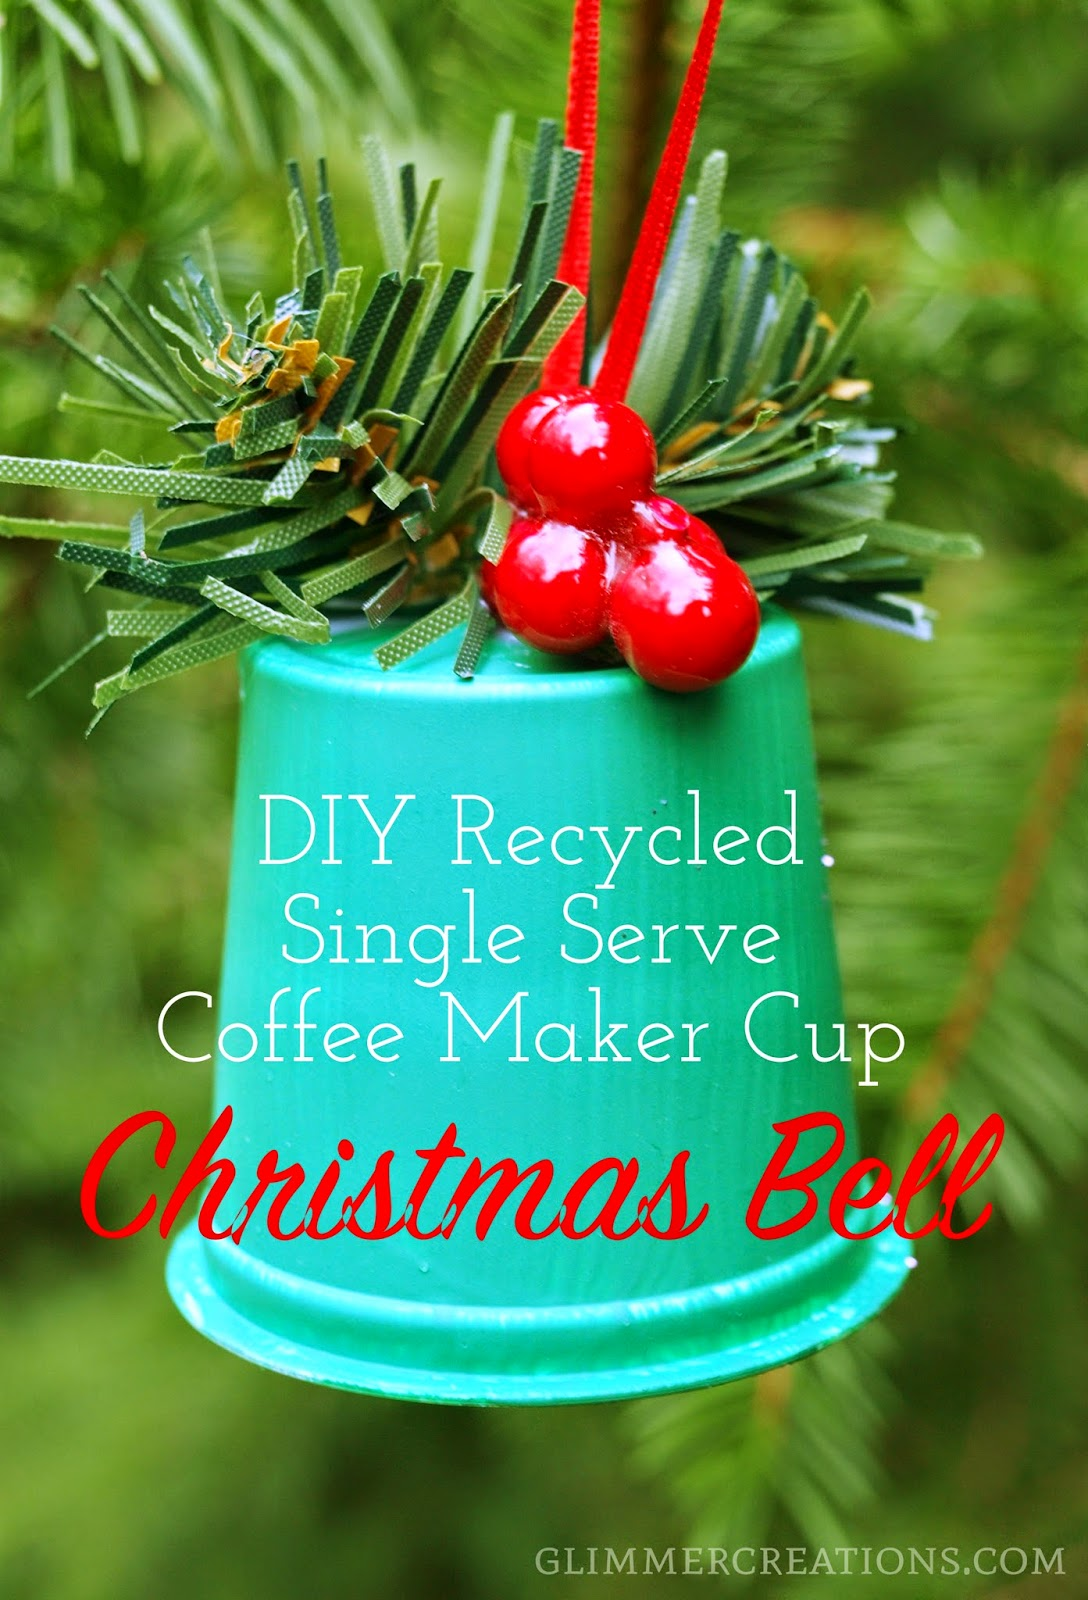 Bell christmas ornament - Recycled Single Serve Coffee Maker Cup Christmas Bell Ornament Tutorial